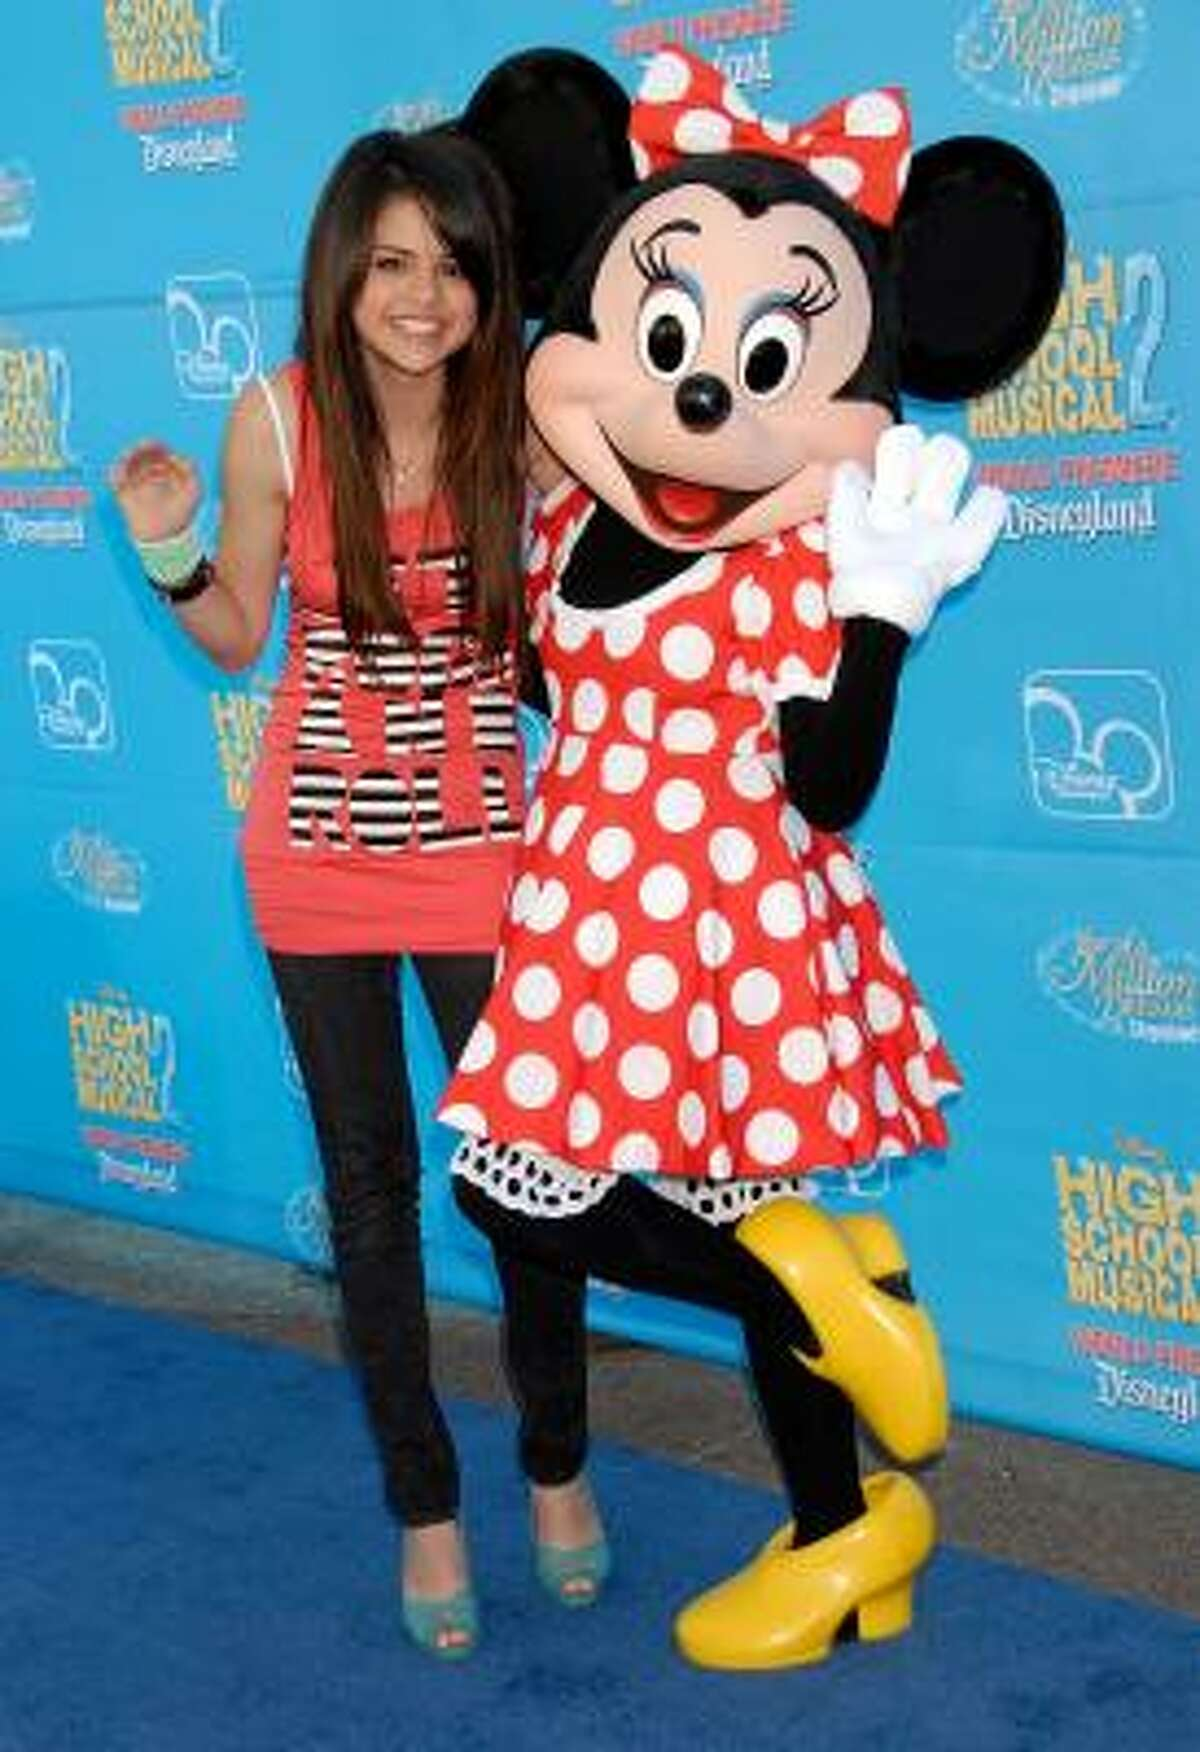 Selena Gomez turns 24 on Friday, July 22. Let's take a look at her style since she was first boosted into stardom. Pictured: Selena Gomez poses with Minnie Mouse at the premiere of Disney Channel's